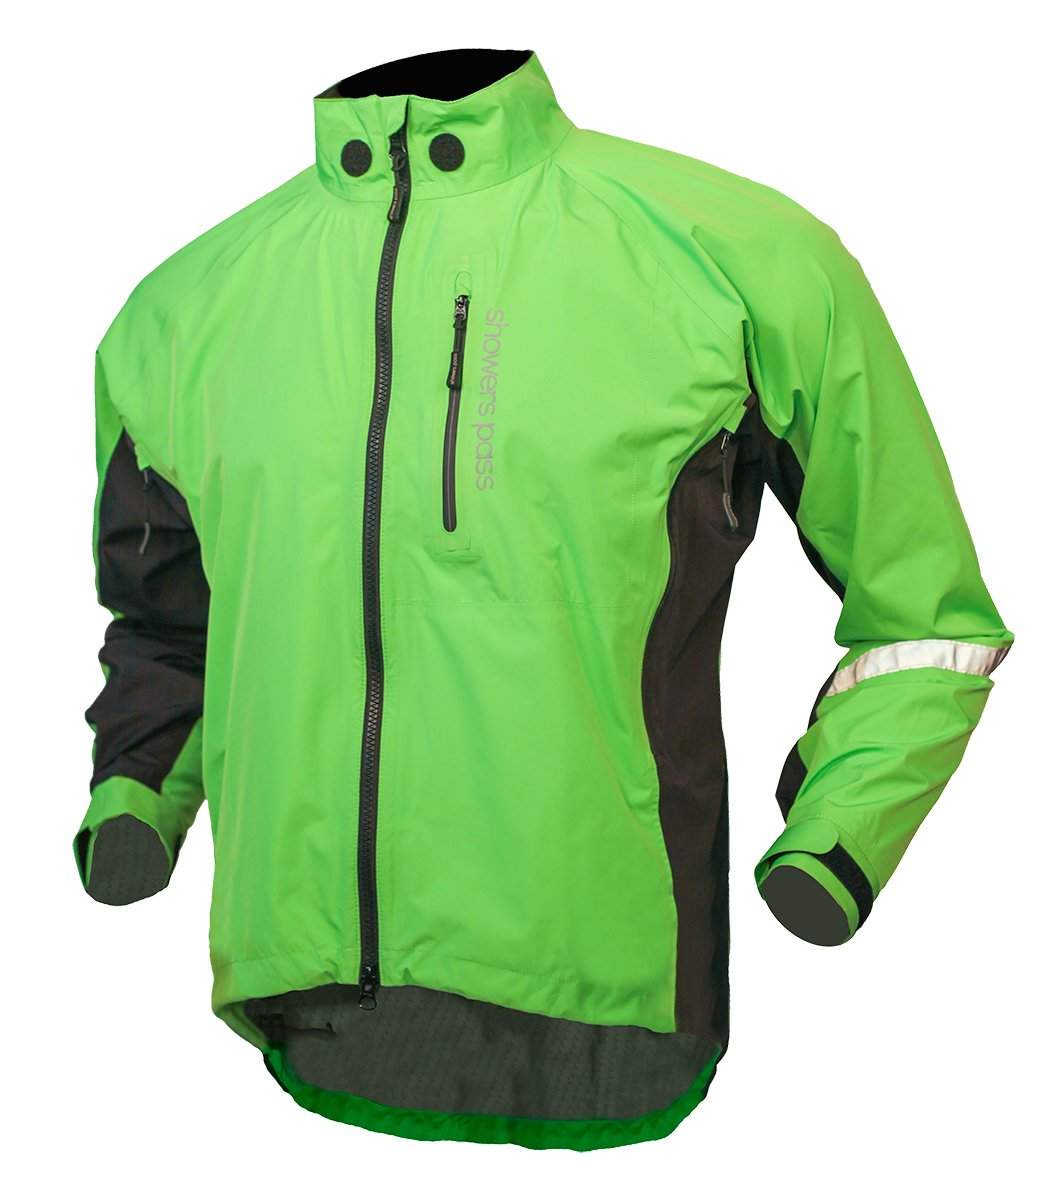 Showers Pass Mens Double Century RTX Waterproof Cycling Jacket 1126-LIME-MD